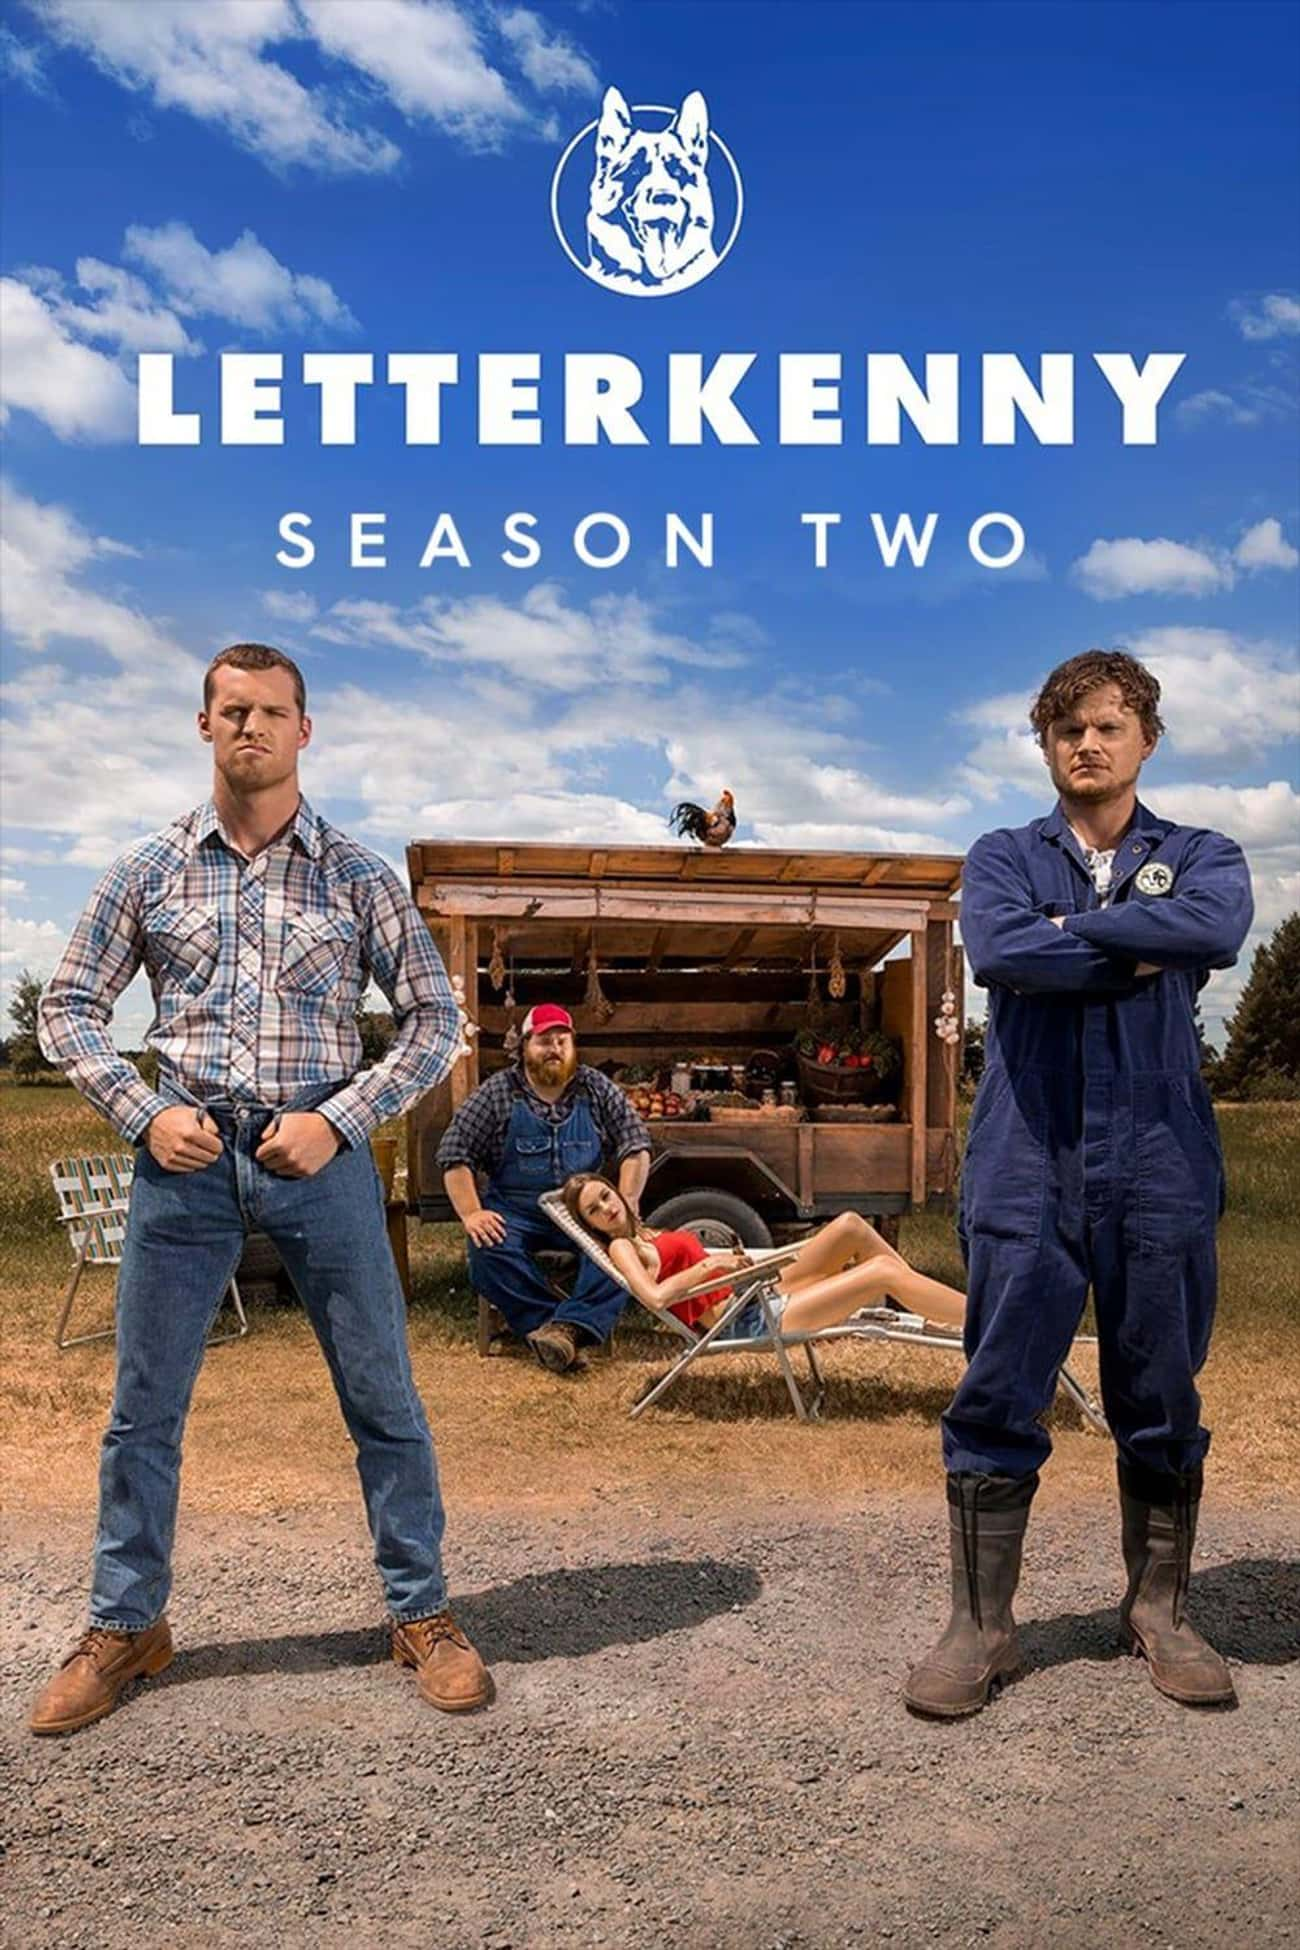 Letterkenny - Season 2 is listed (or ranked) 1 on the list Ranking The Best Seasons of 'Letterkenny'